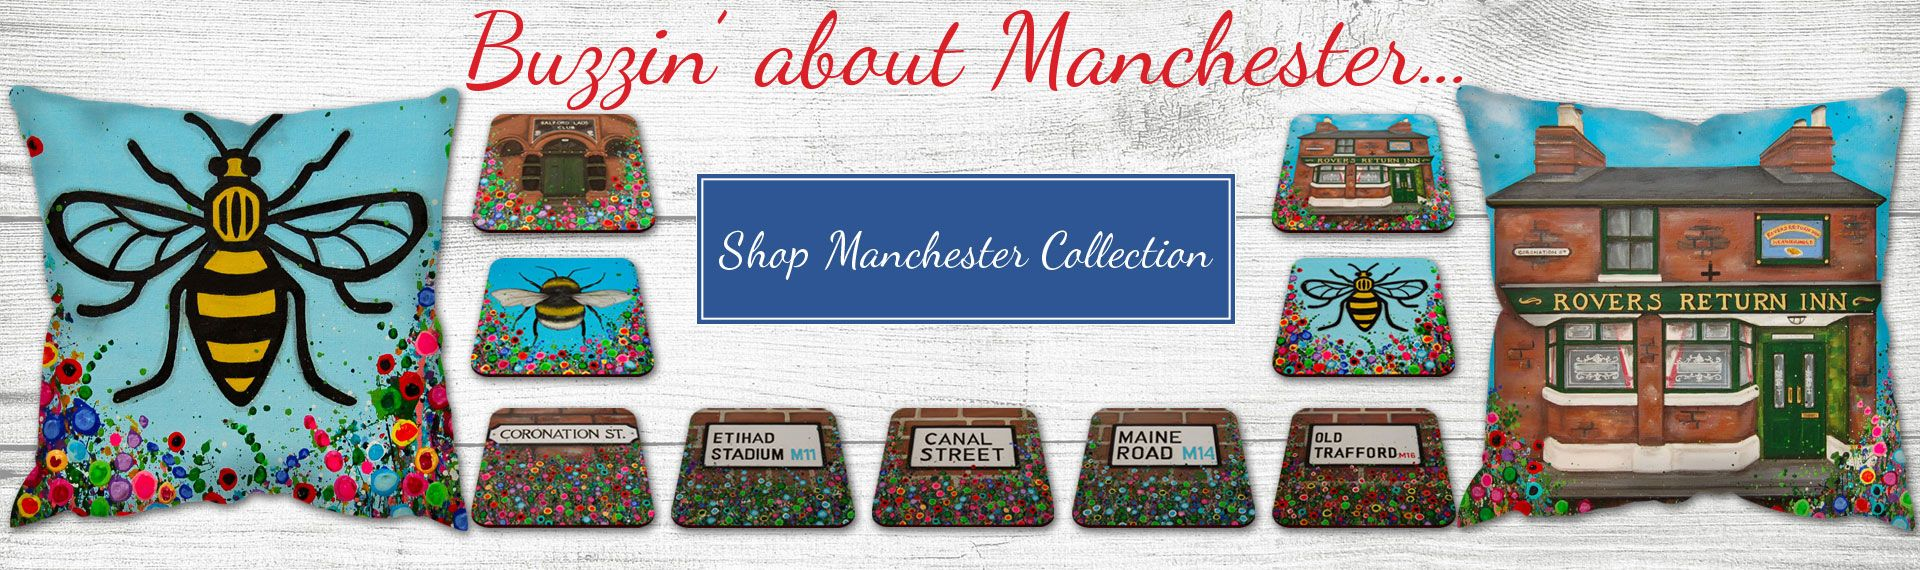 Manchester_Collection_Banner